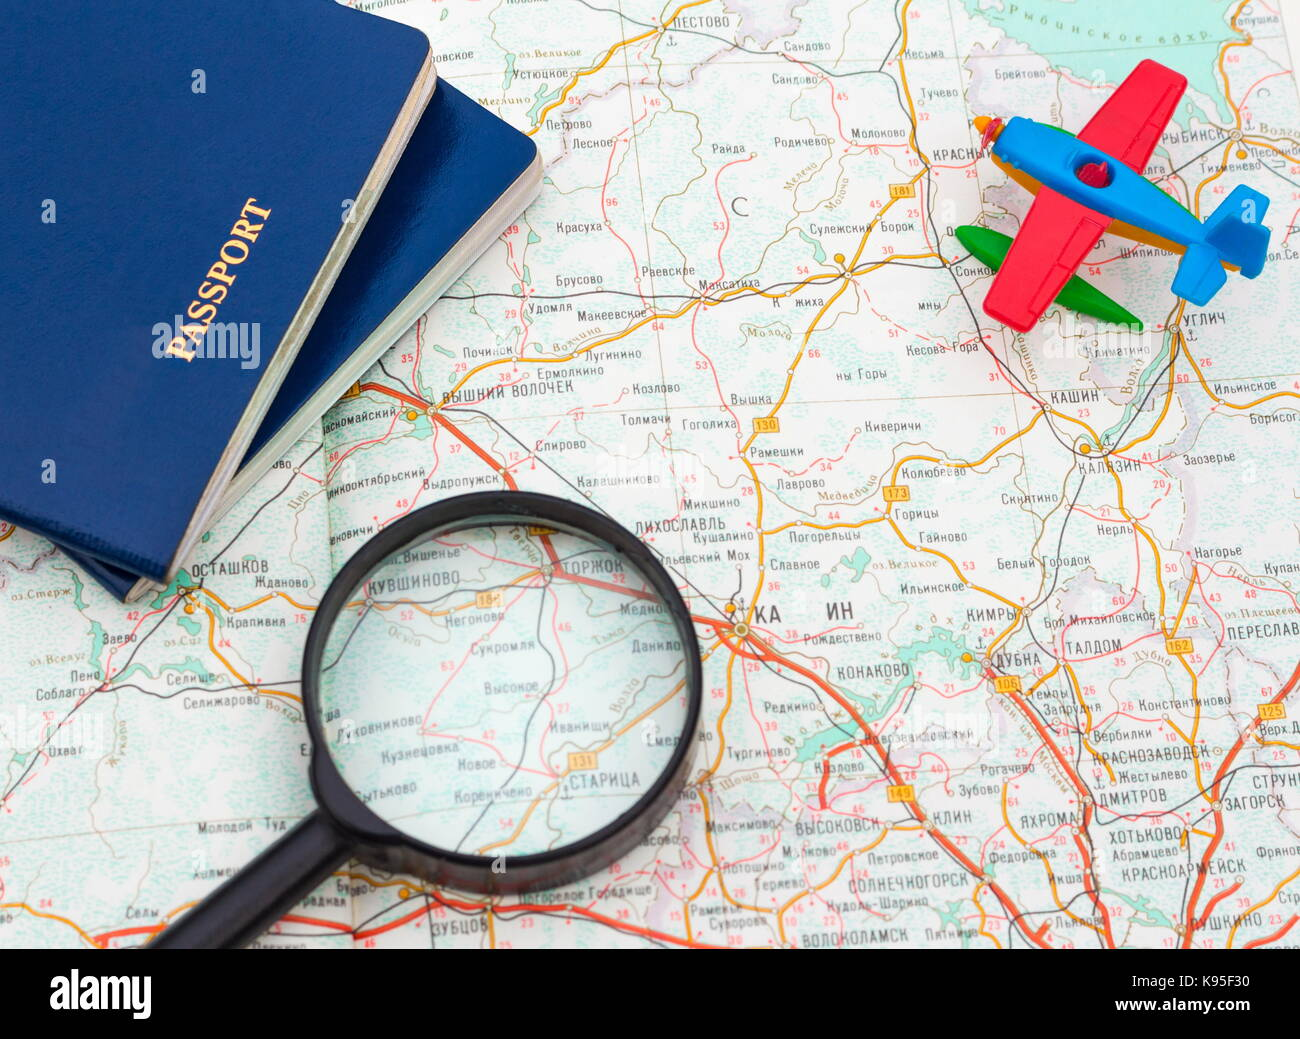 Miniature Airplane Passport And Magnifying Glass On Map Travel Around The World Wallpaper